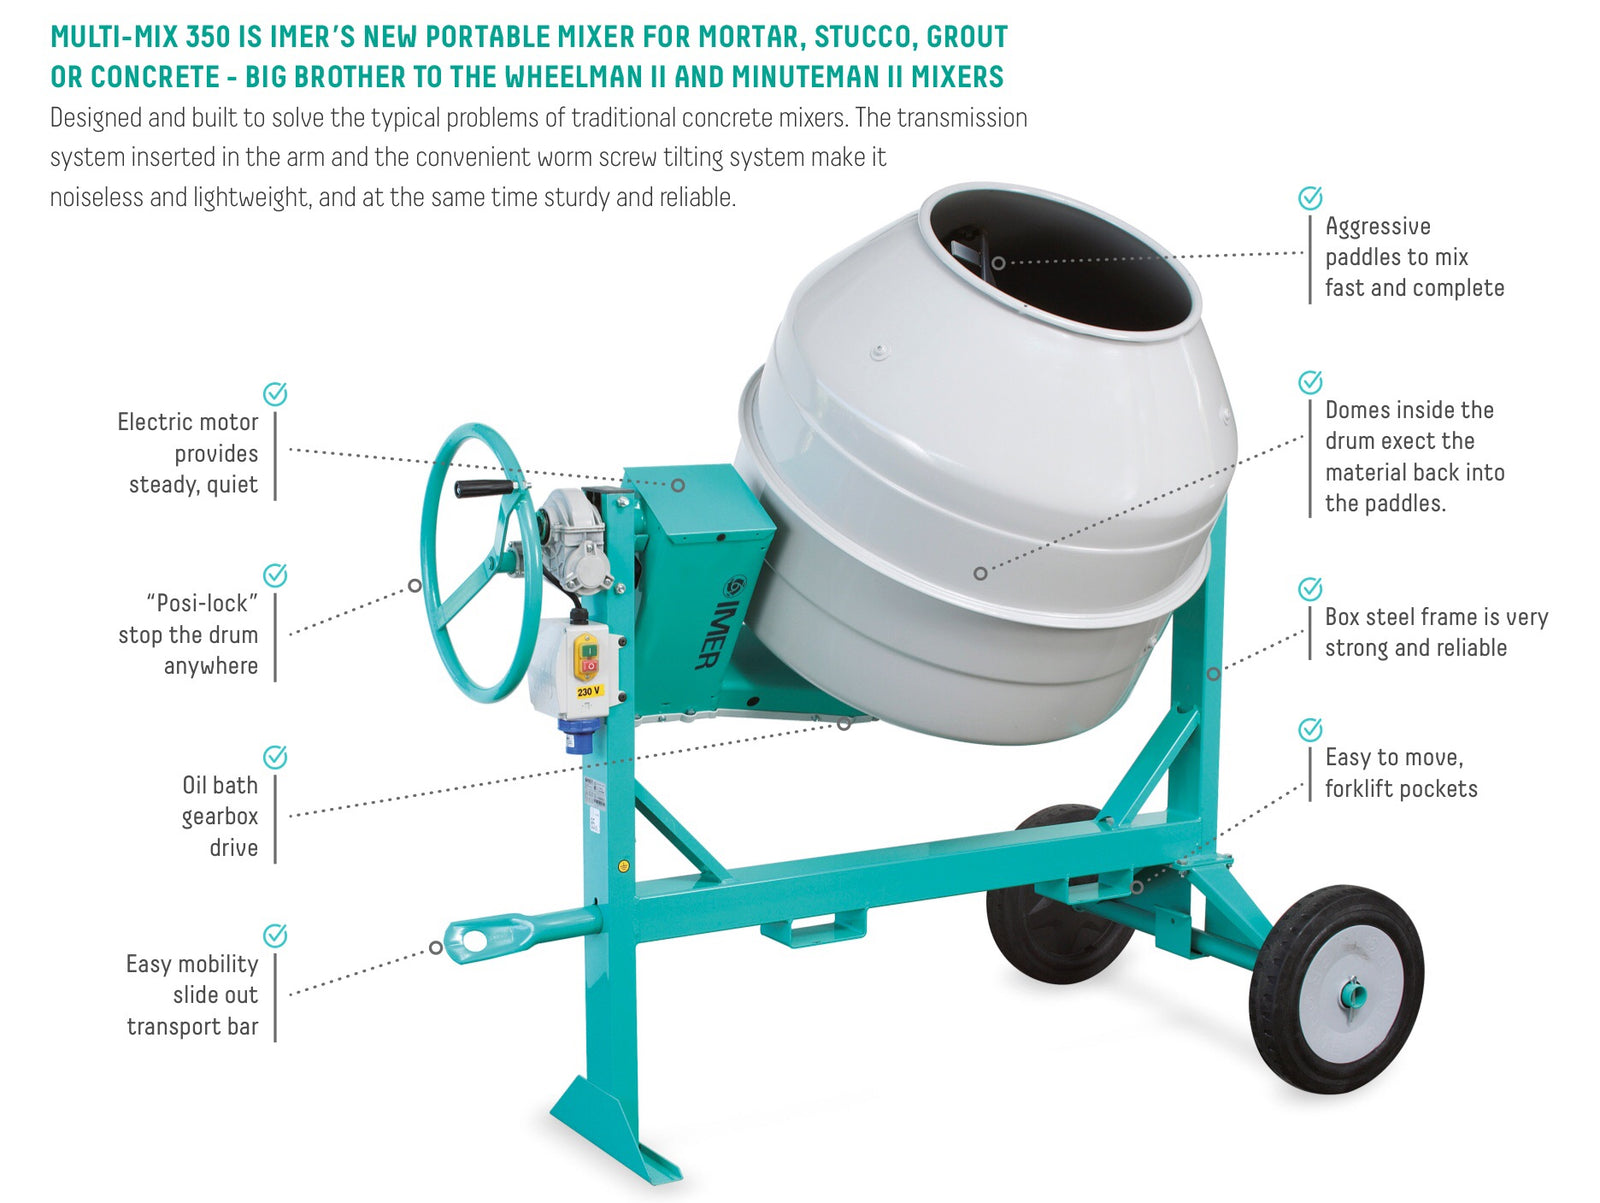 IMER Multi MIX 350 Syntesi - Portable 110volt Electric Mixer for Concrete, Mortar, & Grout.